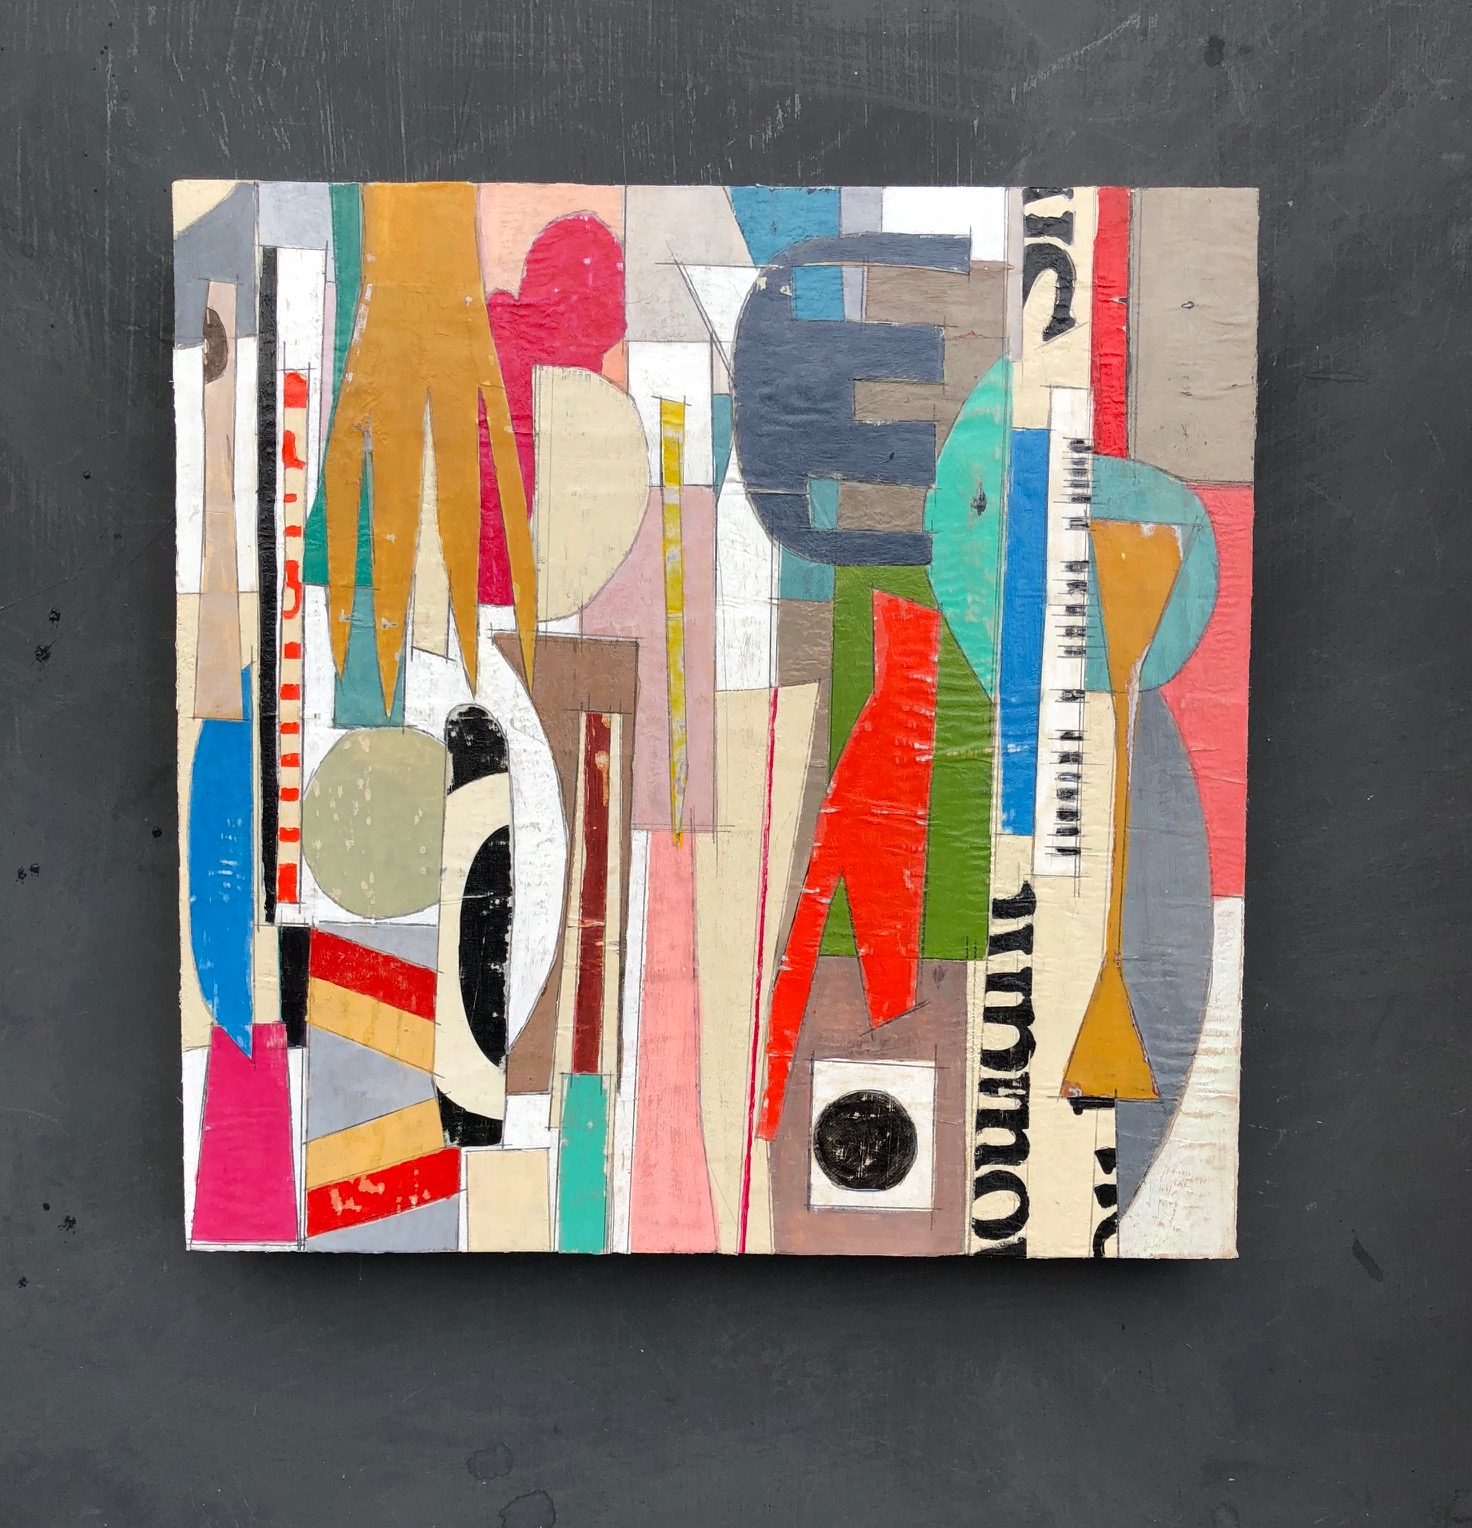 """SOLD. Created Dec 2018, 12"""" x 12"""", Painting on top of mixed media collage. On cradled hardwood. Wax finish."""